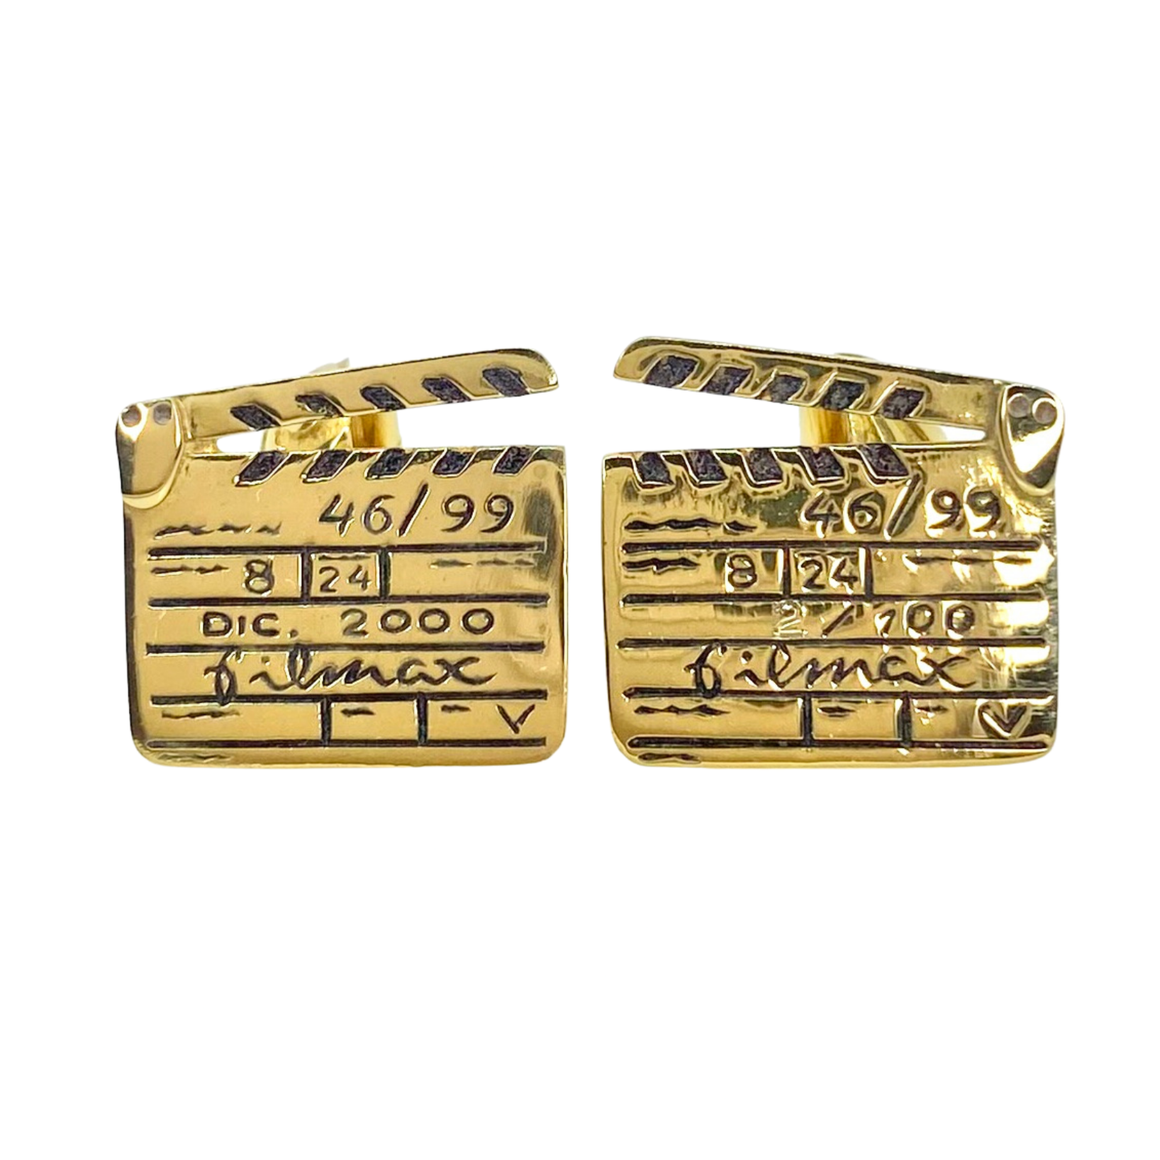 Vintage Filmax 18K Yellow Gold Directors Cut Cufflinks Limited Edition